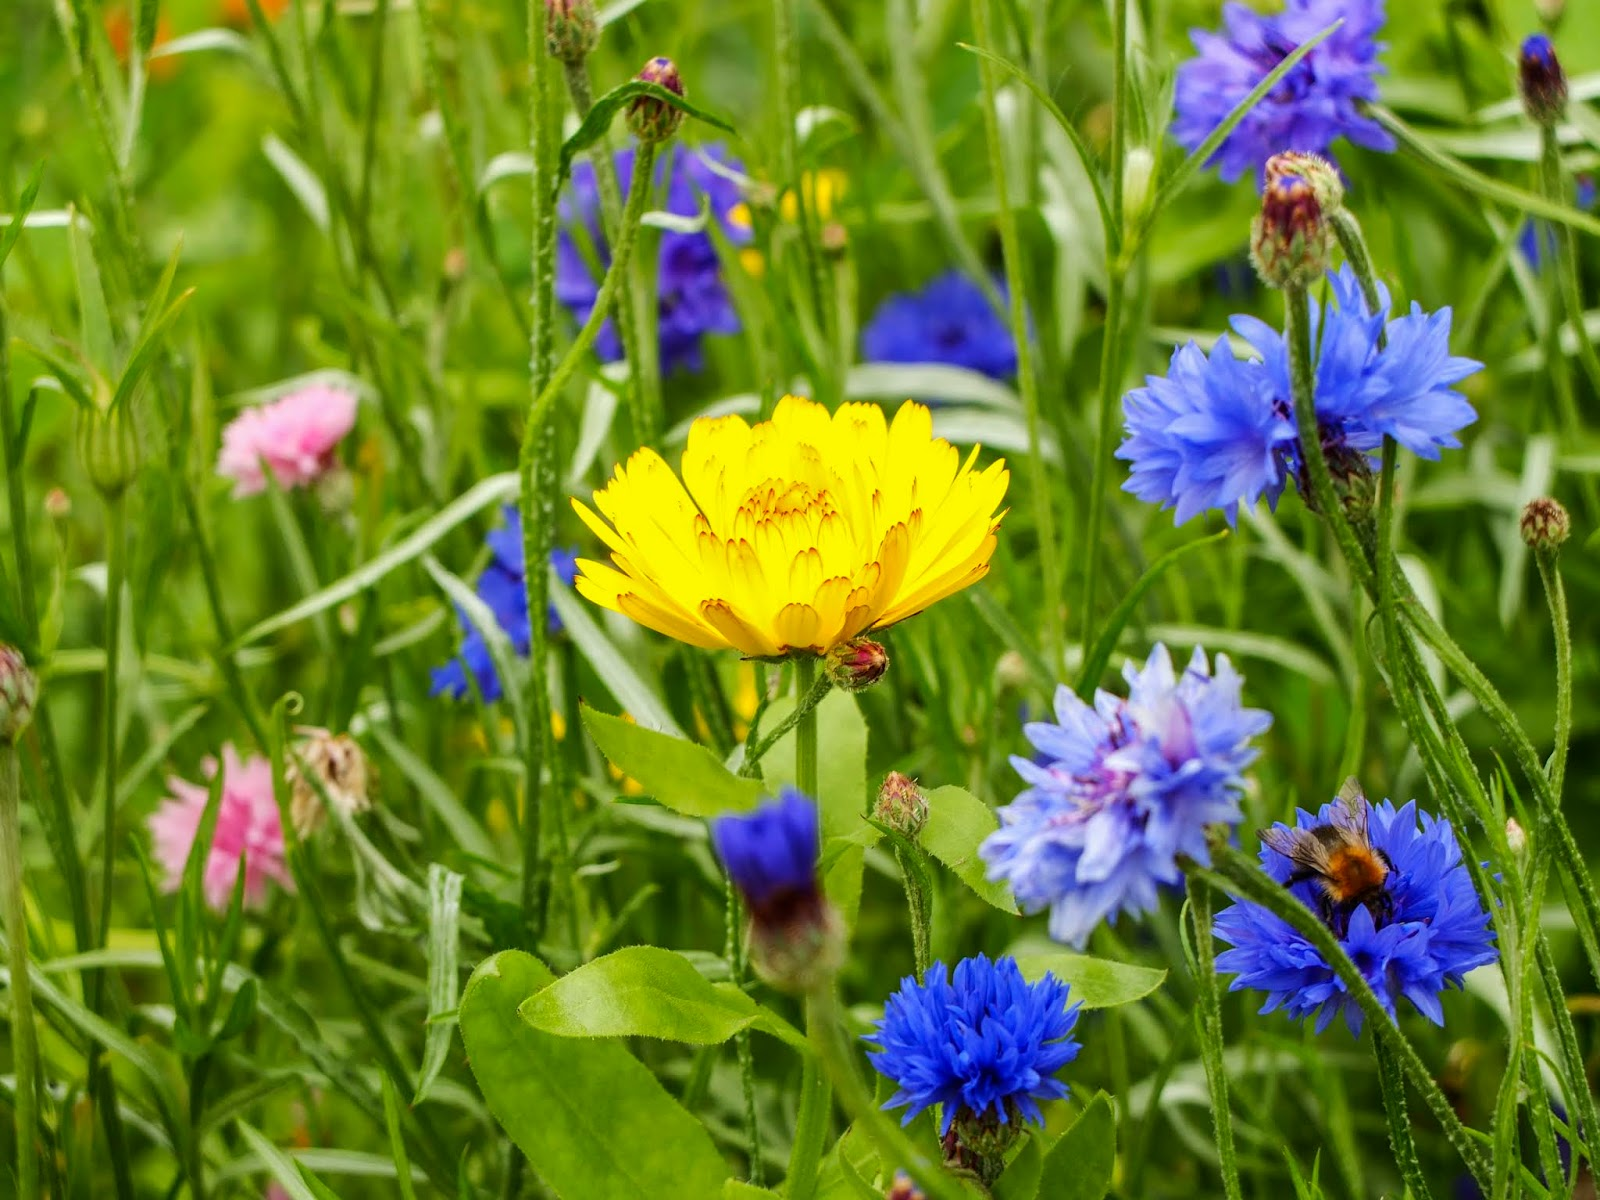 A close up of some wildflowers in a meadow.